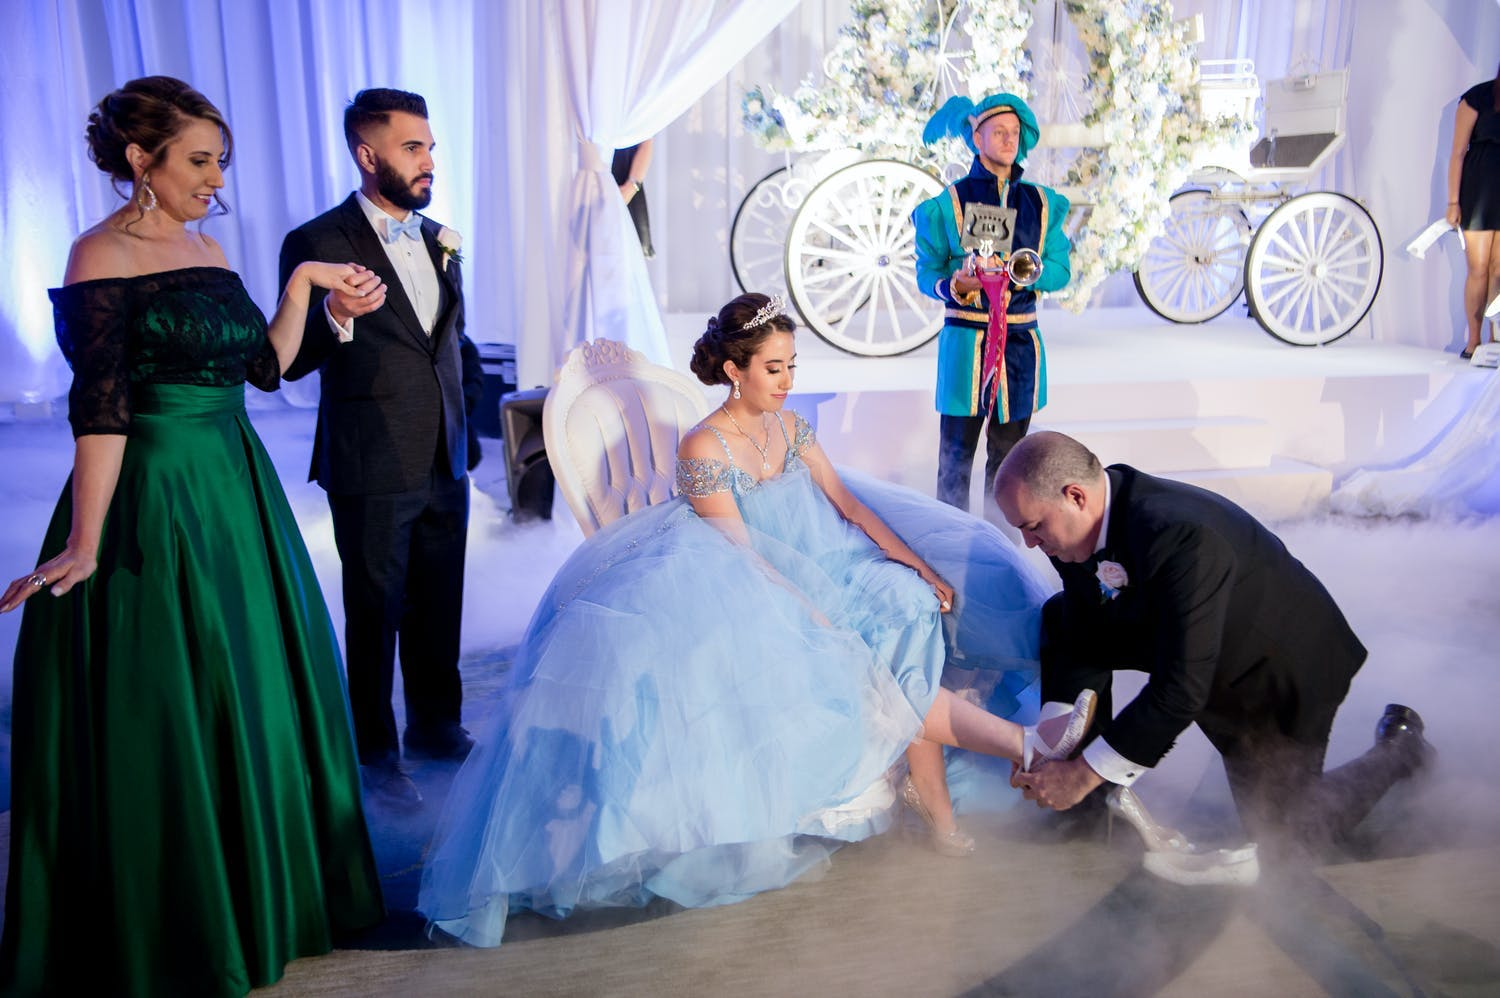 Father changes quinceañera's shoes to represent her transition into adulthood | PartySlate